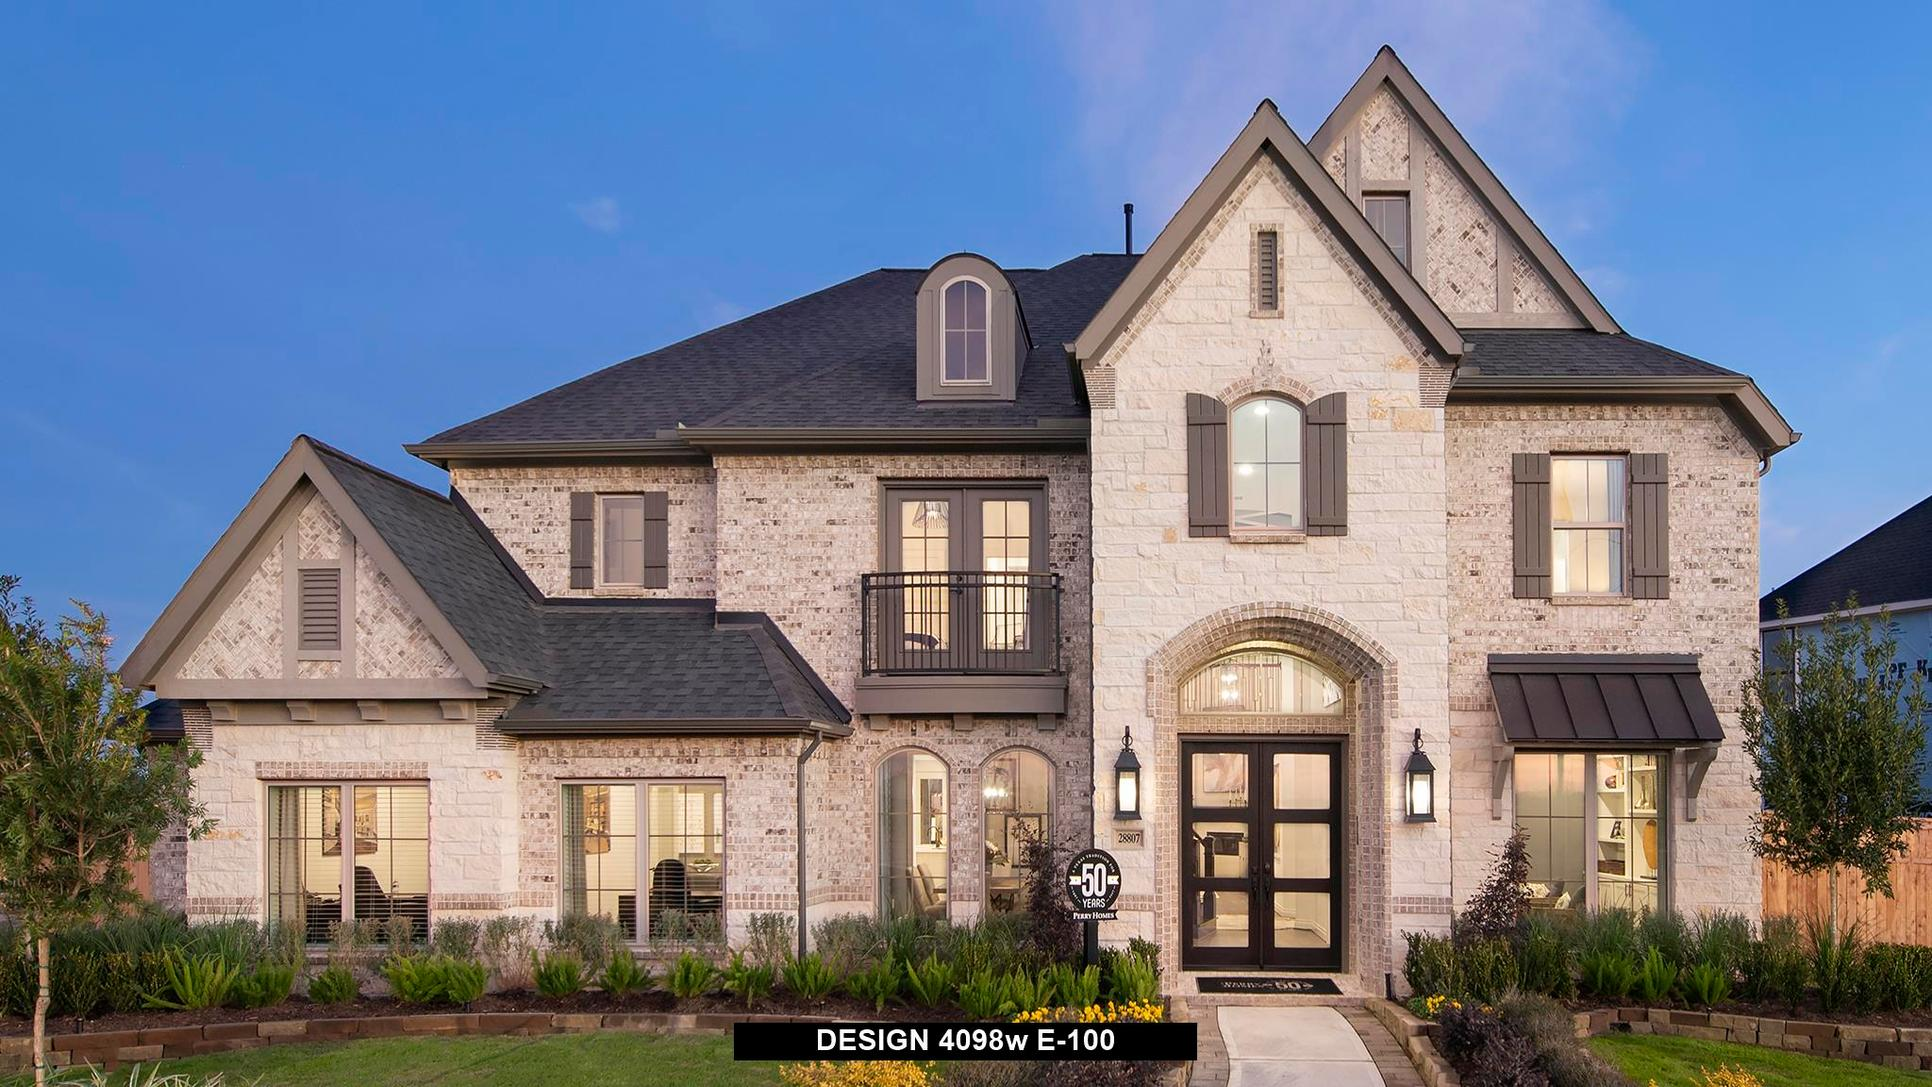 Plan 4098W:Representative photo.  Features and specifications may vary by community.